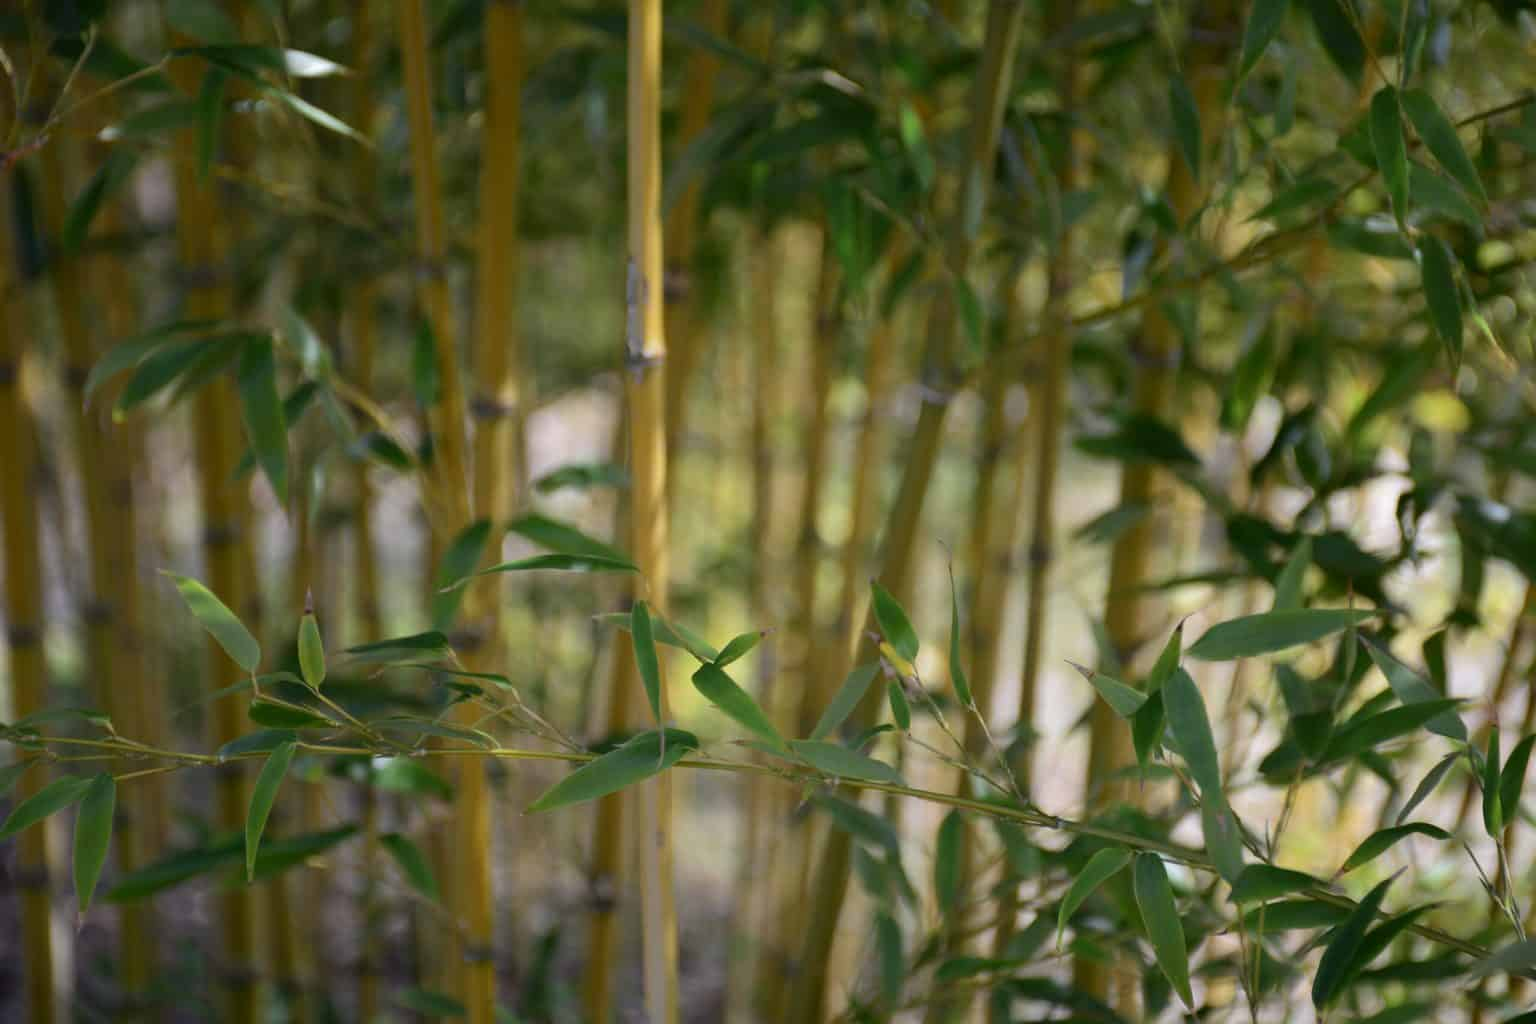 10 Different Types of Bamboo Plants With Pictures